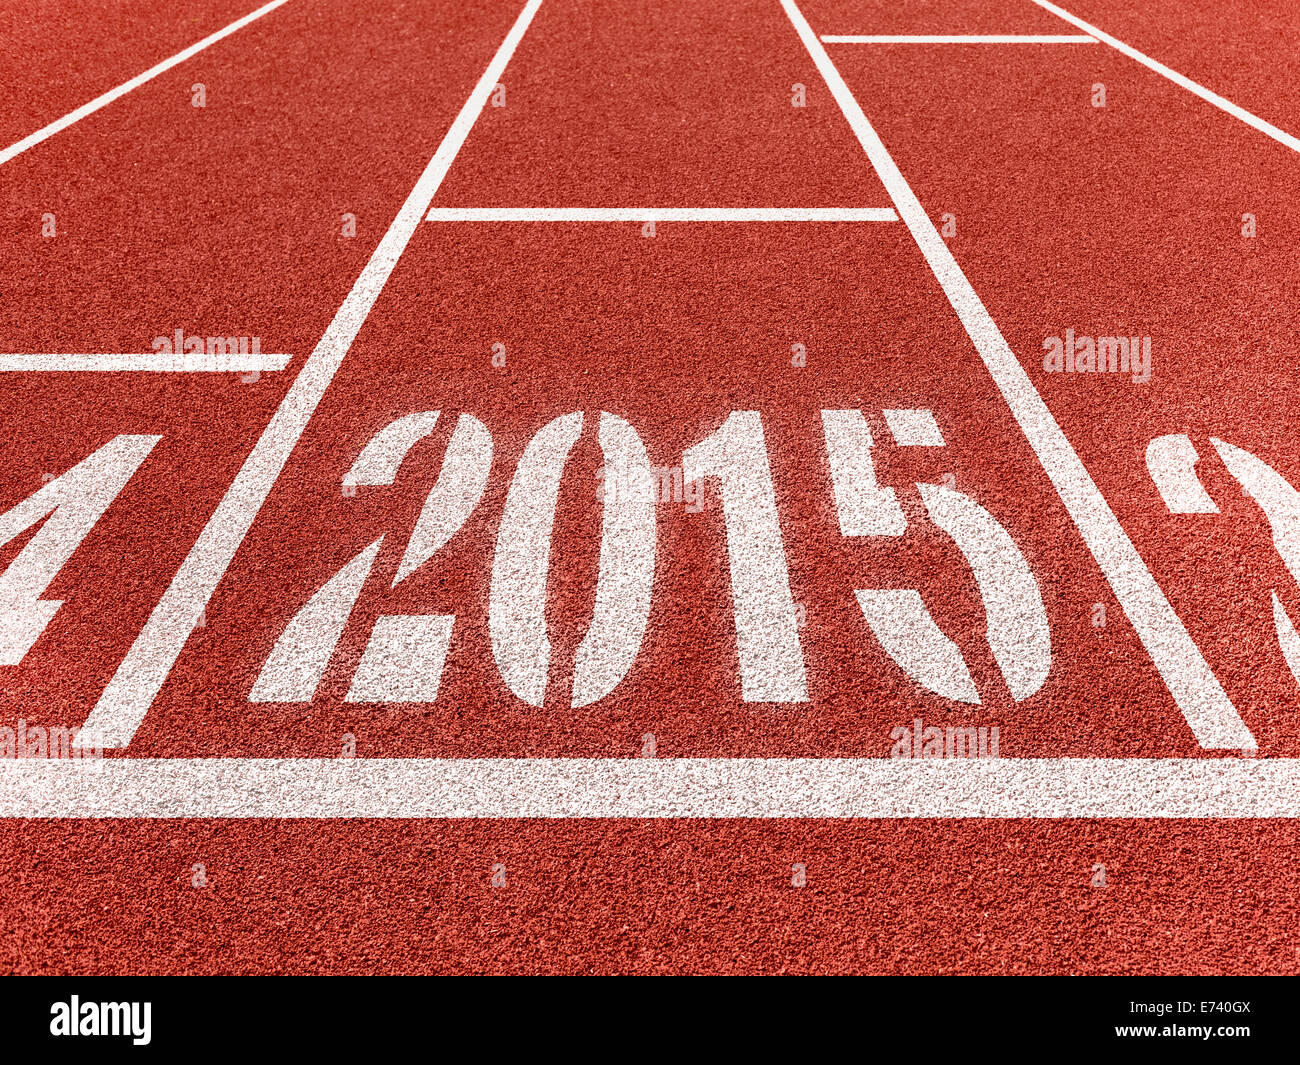 New year 2015 diggits on sport track with arrow. Good start, growing business concept. - Stock Image